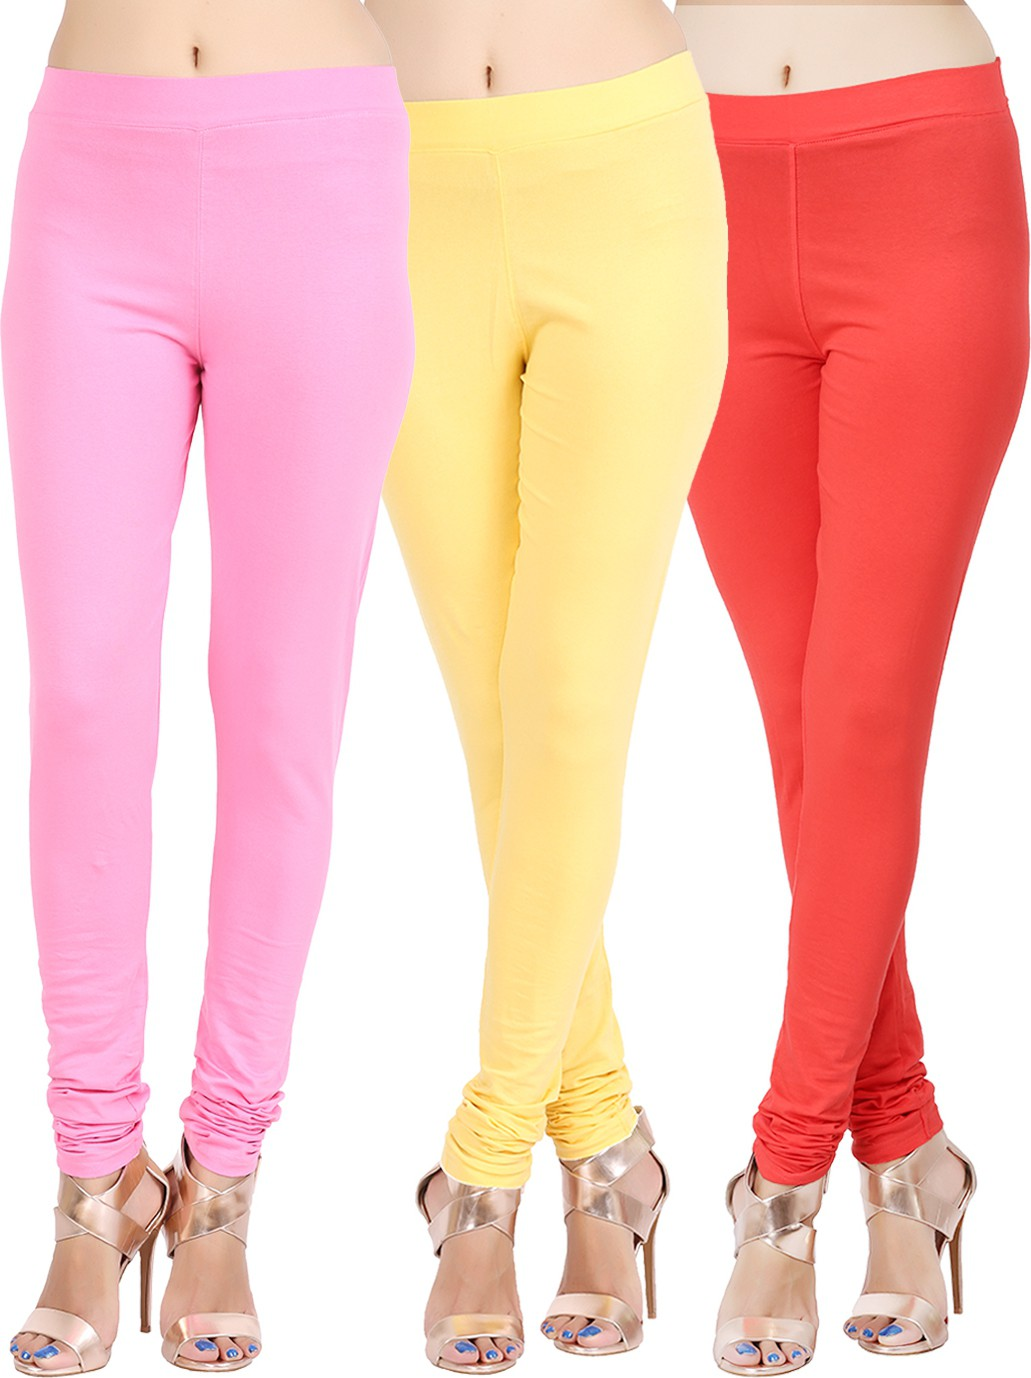 Lula Ms Womens Red, Pink, Yellow Leggings(Pack of 3)